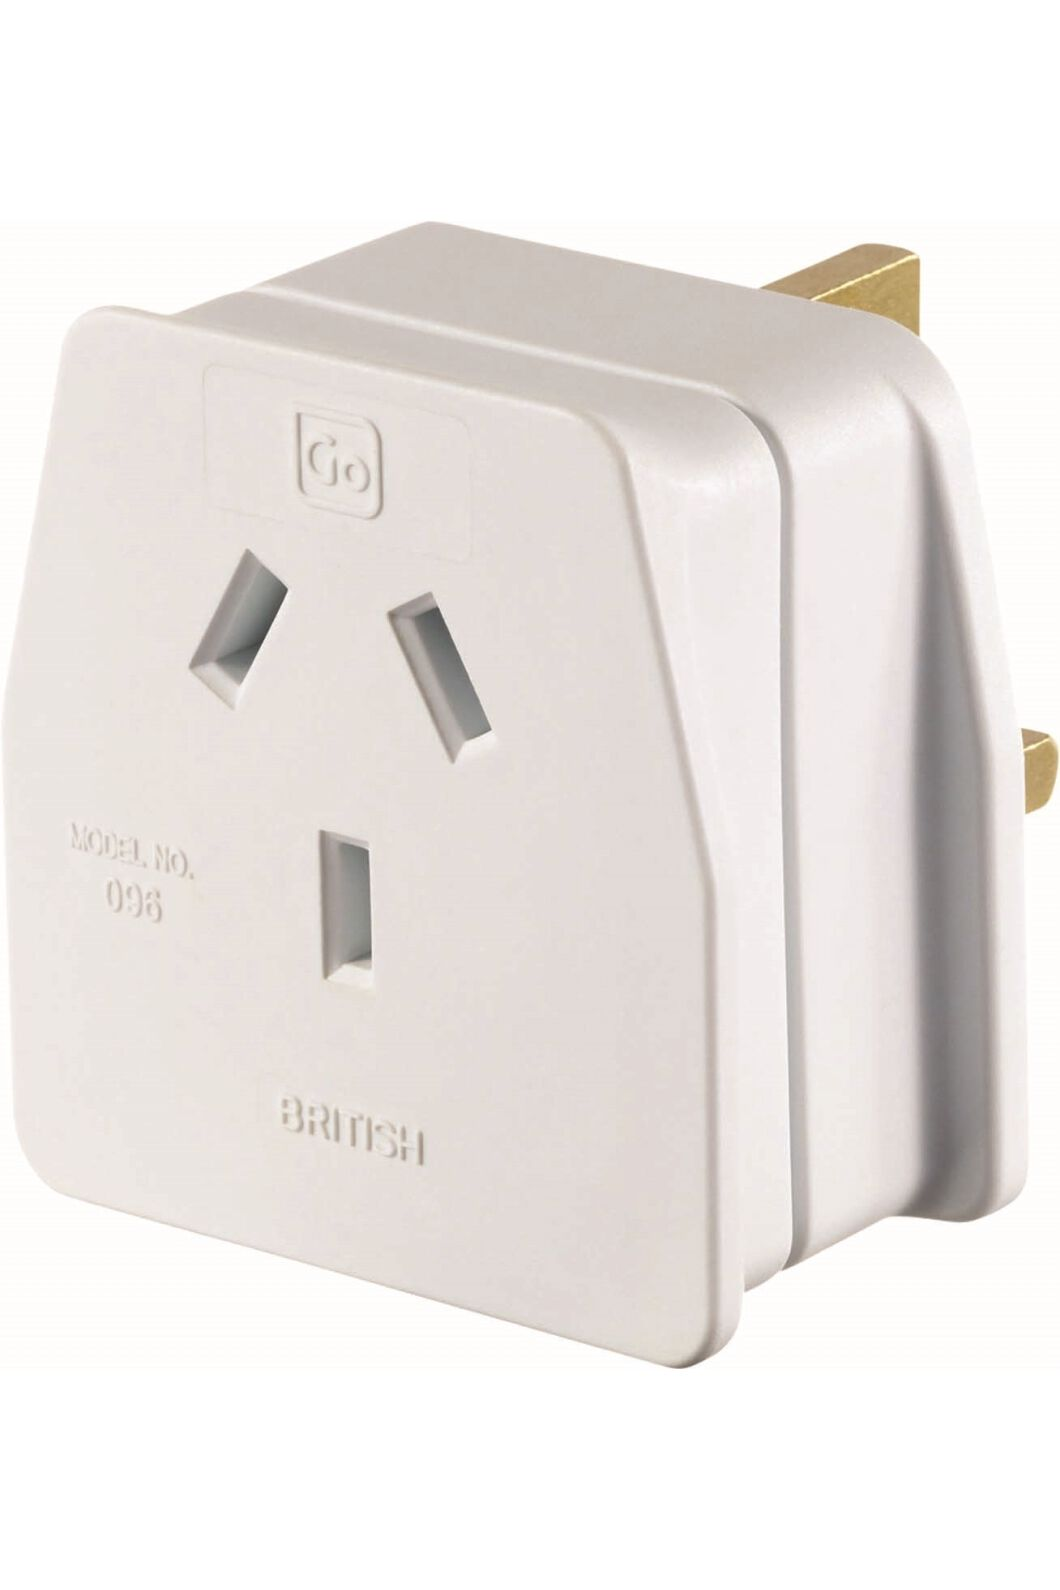 Go Travel UK Travel Adaptor, None, hi-res